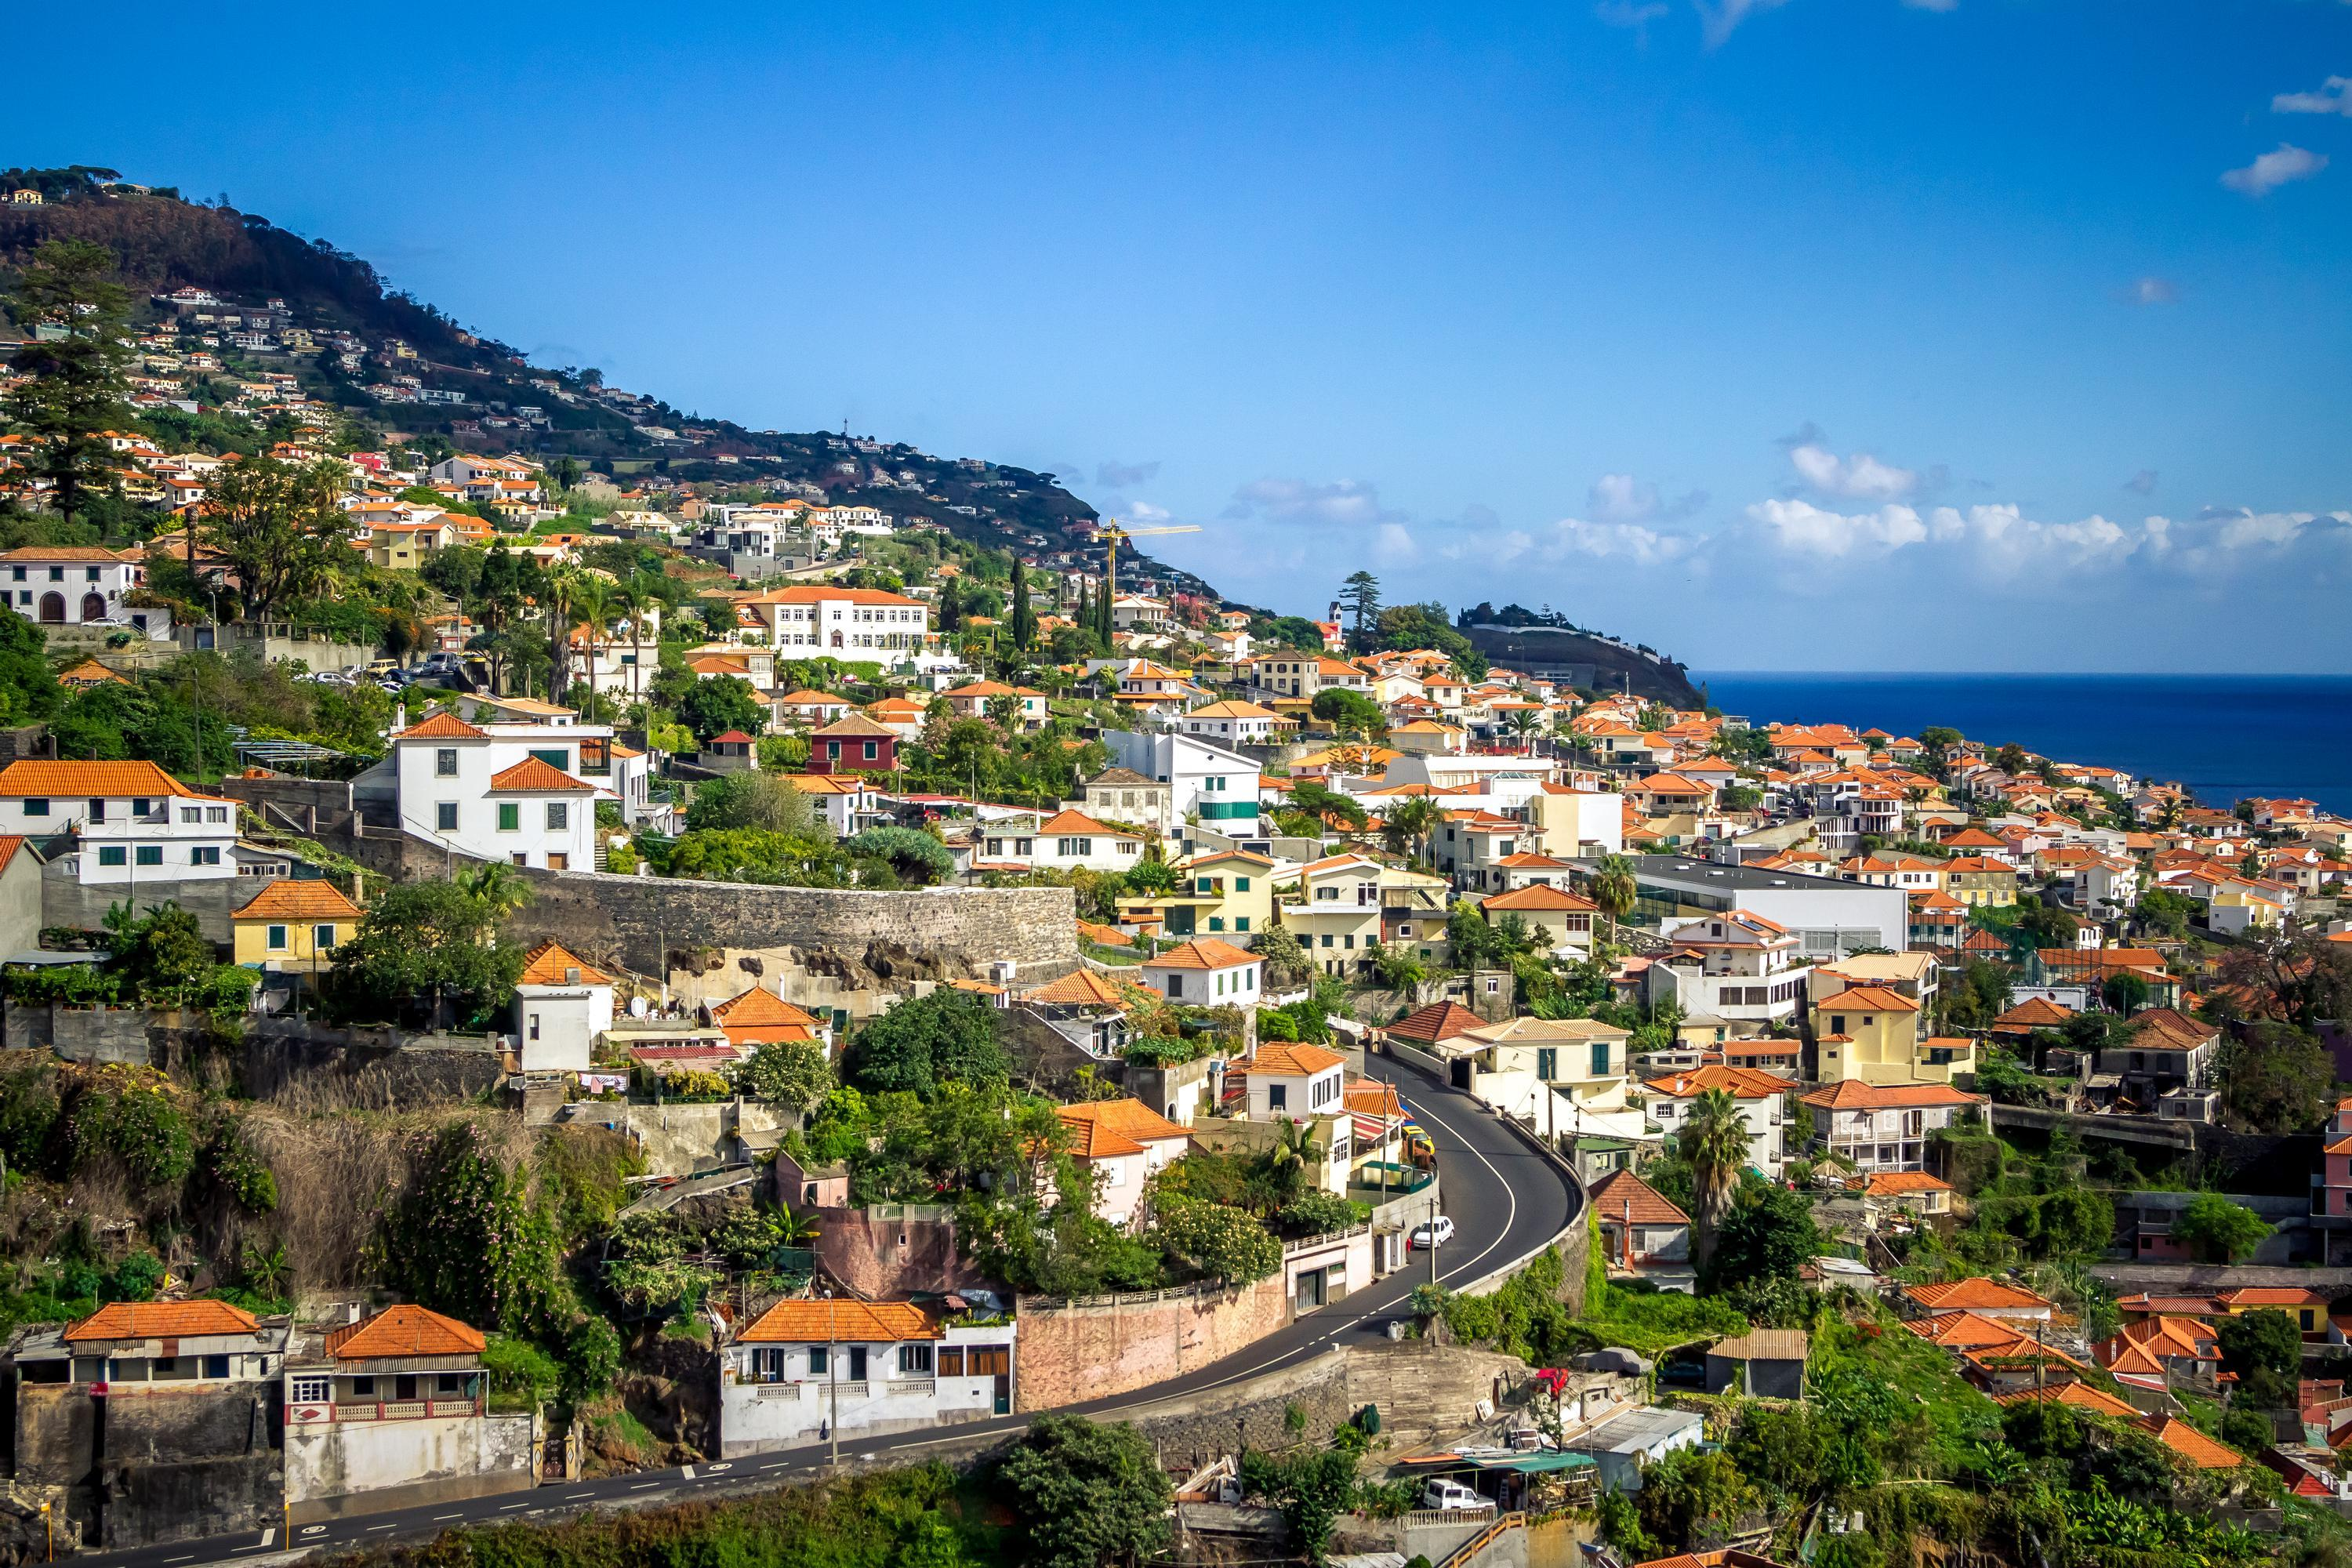 Here are the top 5 reasons to visit Funchal